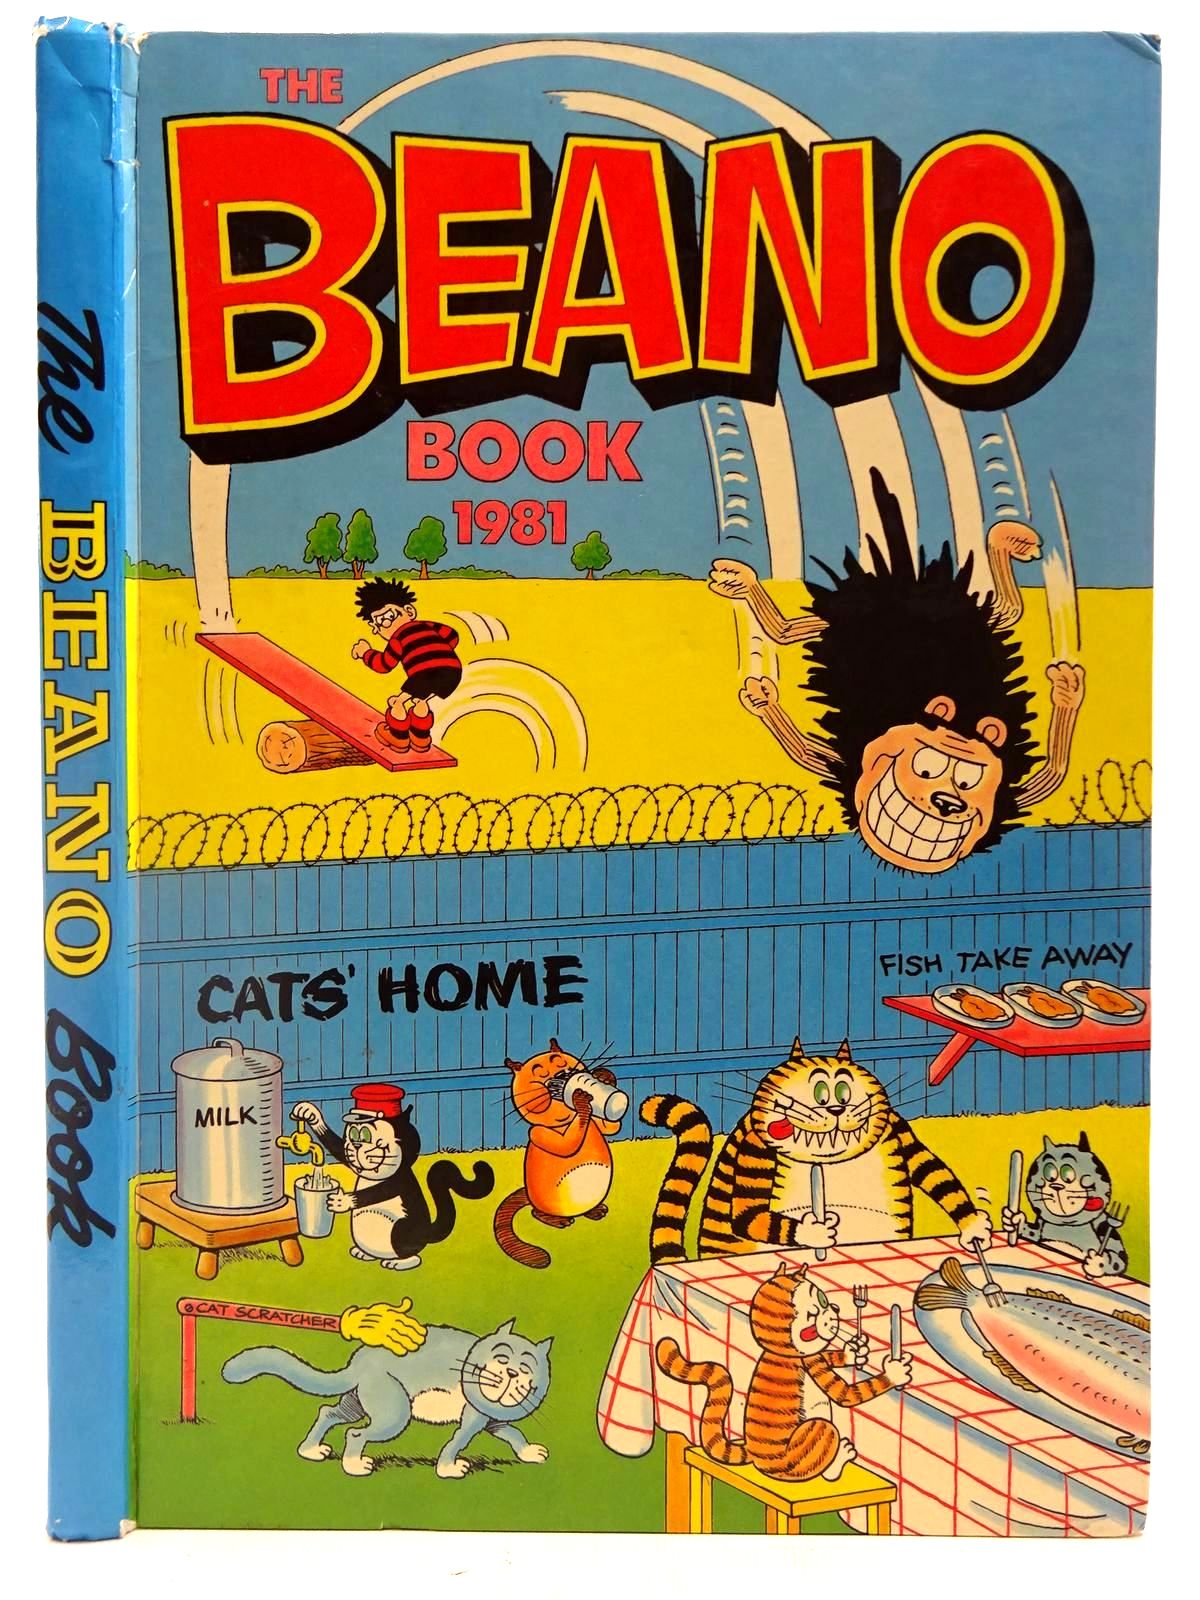 Photo of THE BEANO BOOK 1981 published by D.C. Thomson & Co Ltd. (STOCK CODE: 2127313)  for sale by Stella & Rose's Books